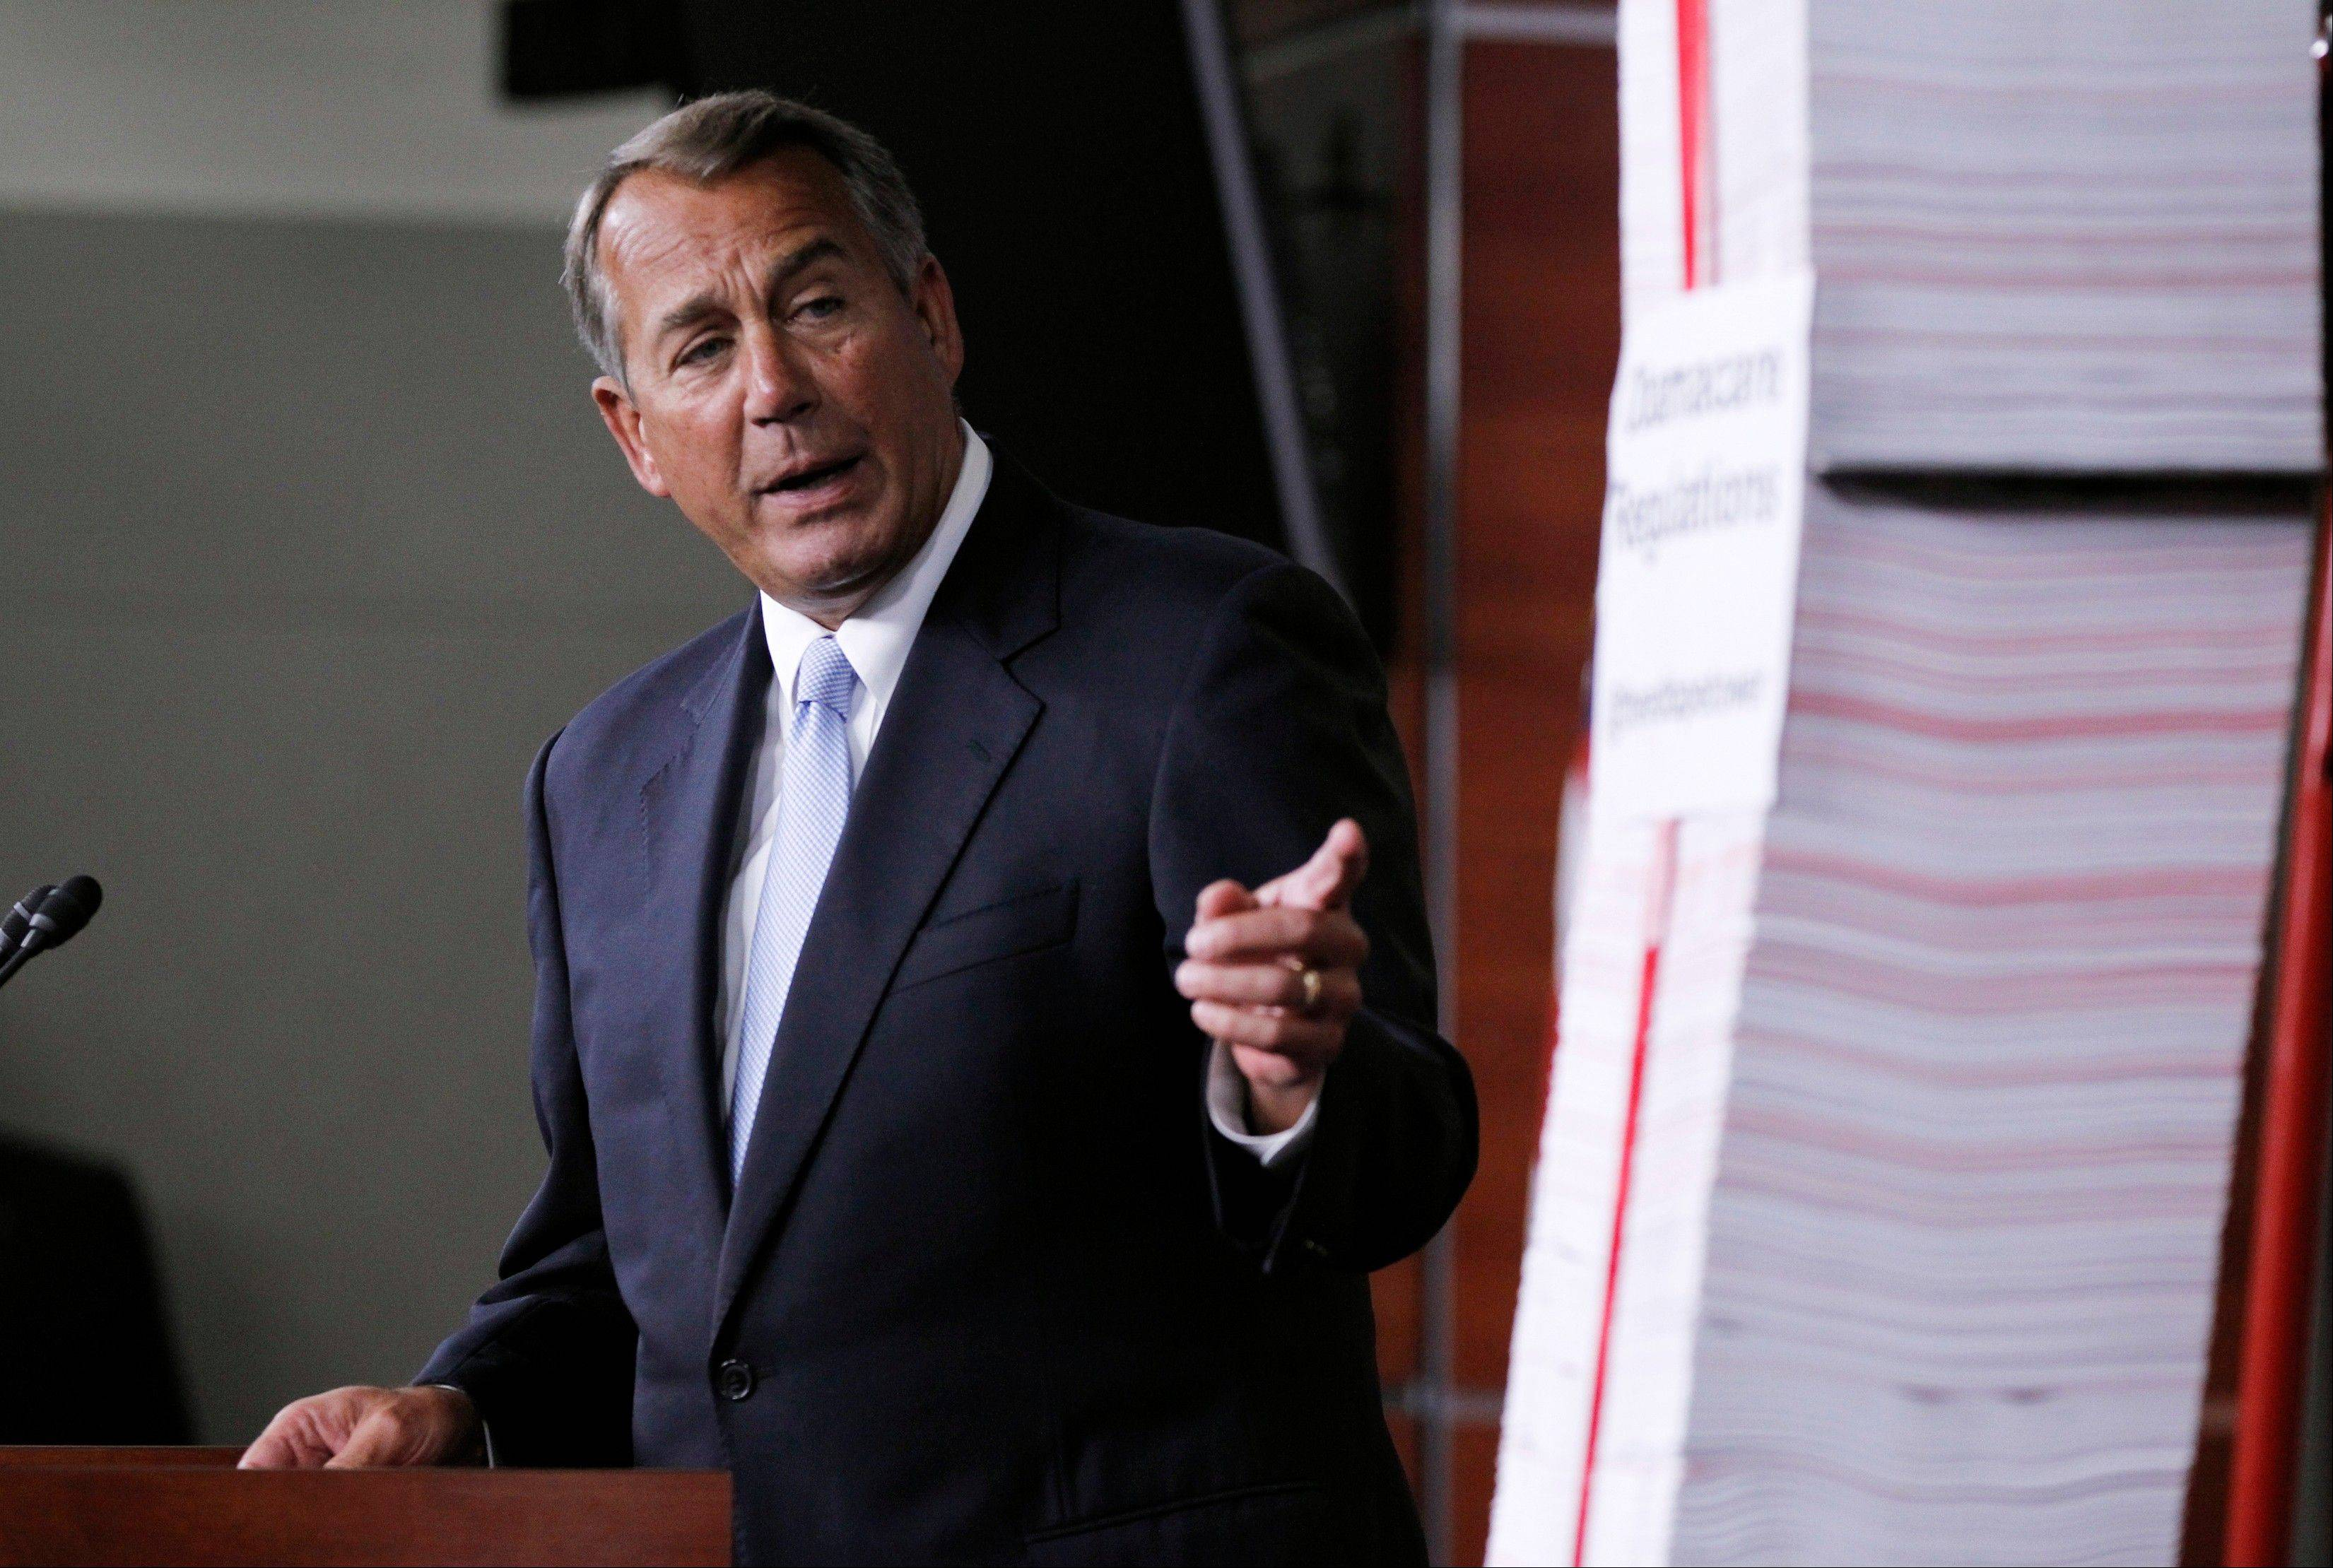 House Speaker, Republican John Boehner of Ohio, points toward the tall stack of paper, representing 20,000 pages of Affordable Care Act regulations, during a news conference on Capitol Hill in Washington.